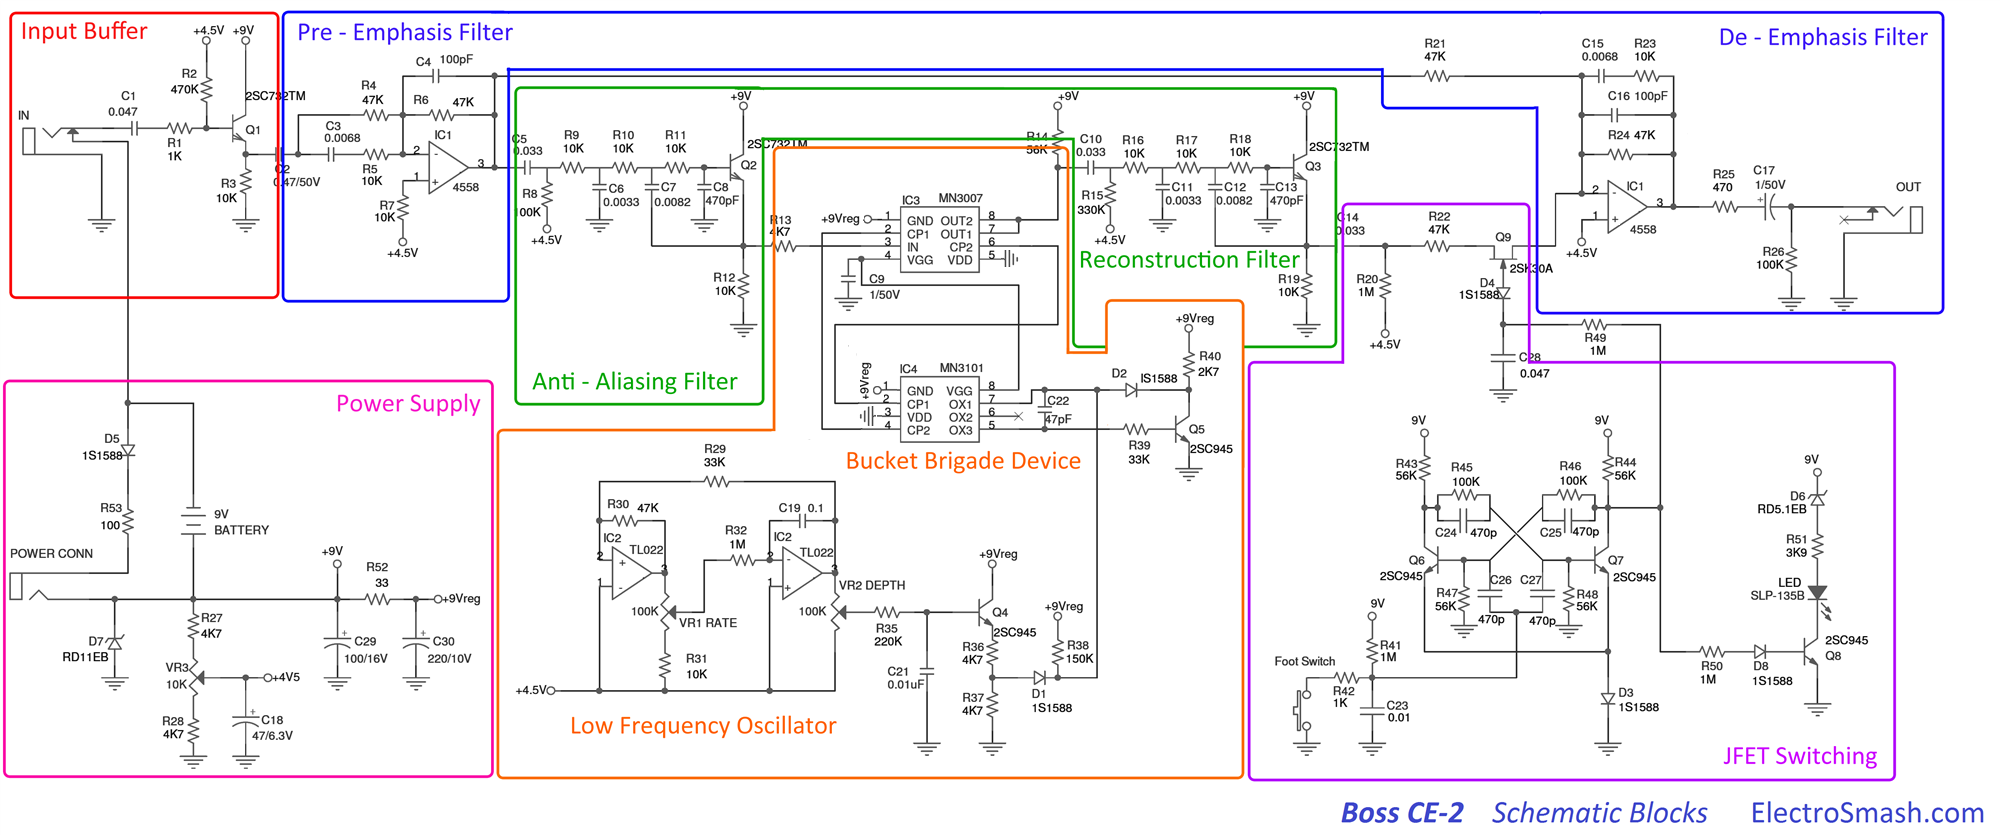 Adapter Circuit Diagram As Follows Electrosmash Boss Ce 2 Analysis Schematic Blocks